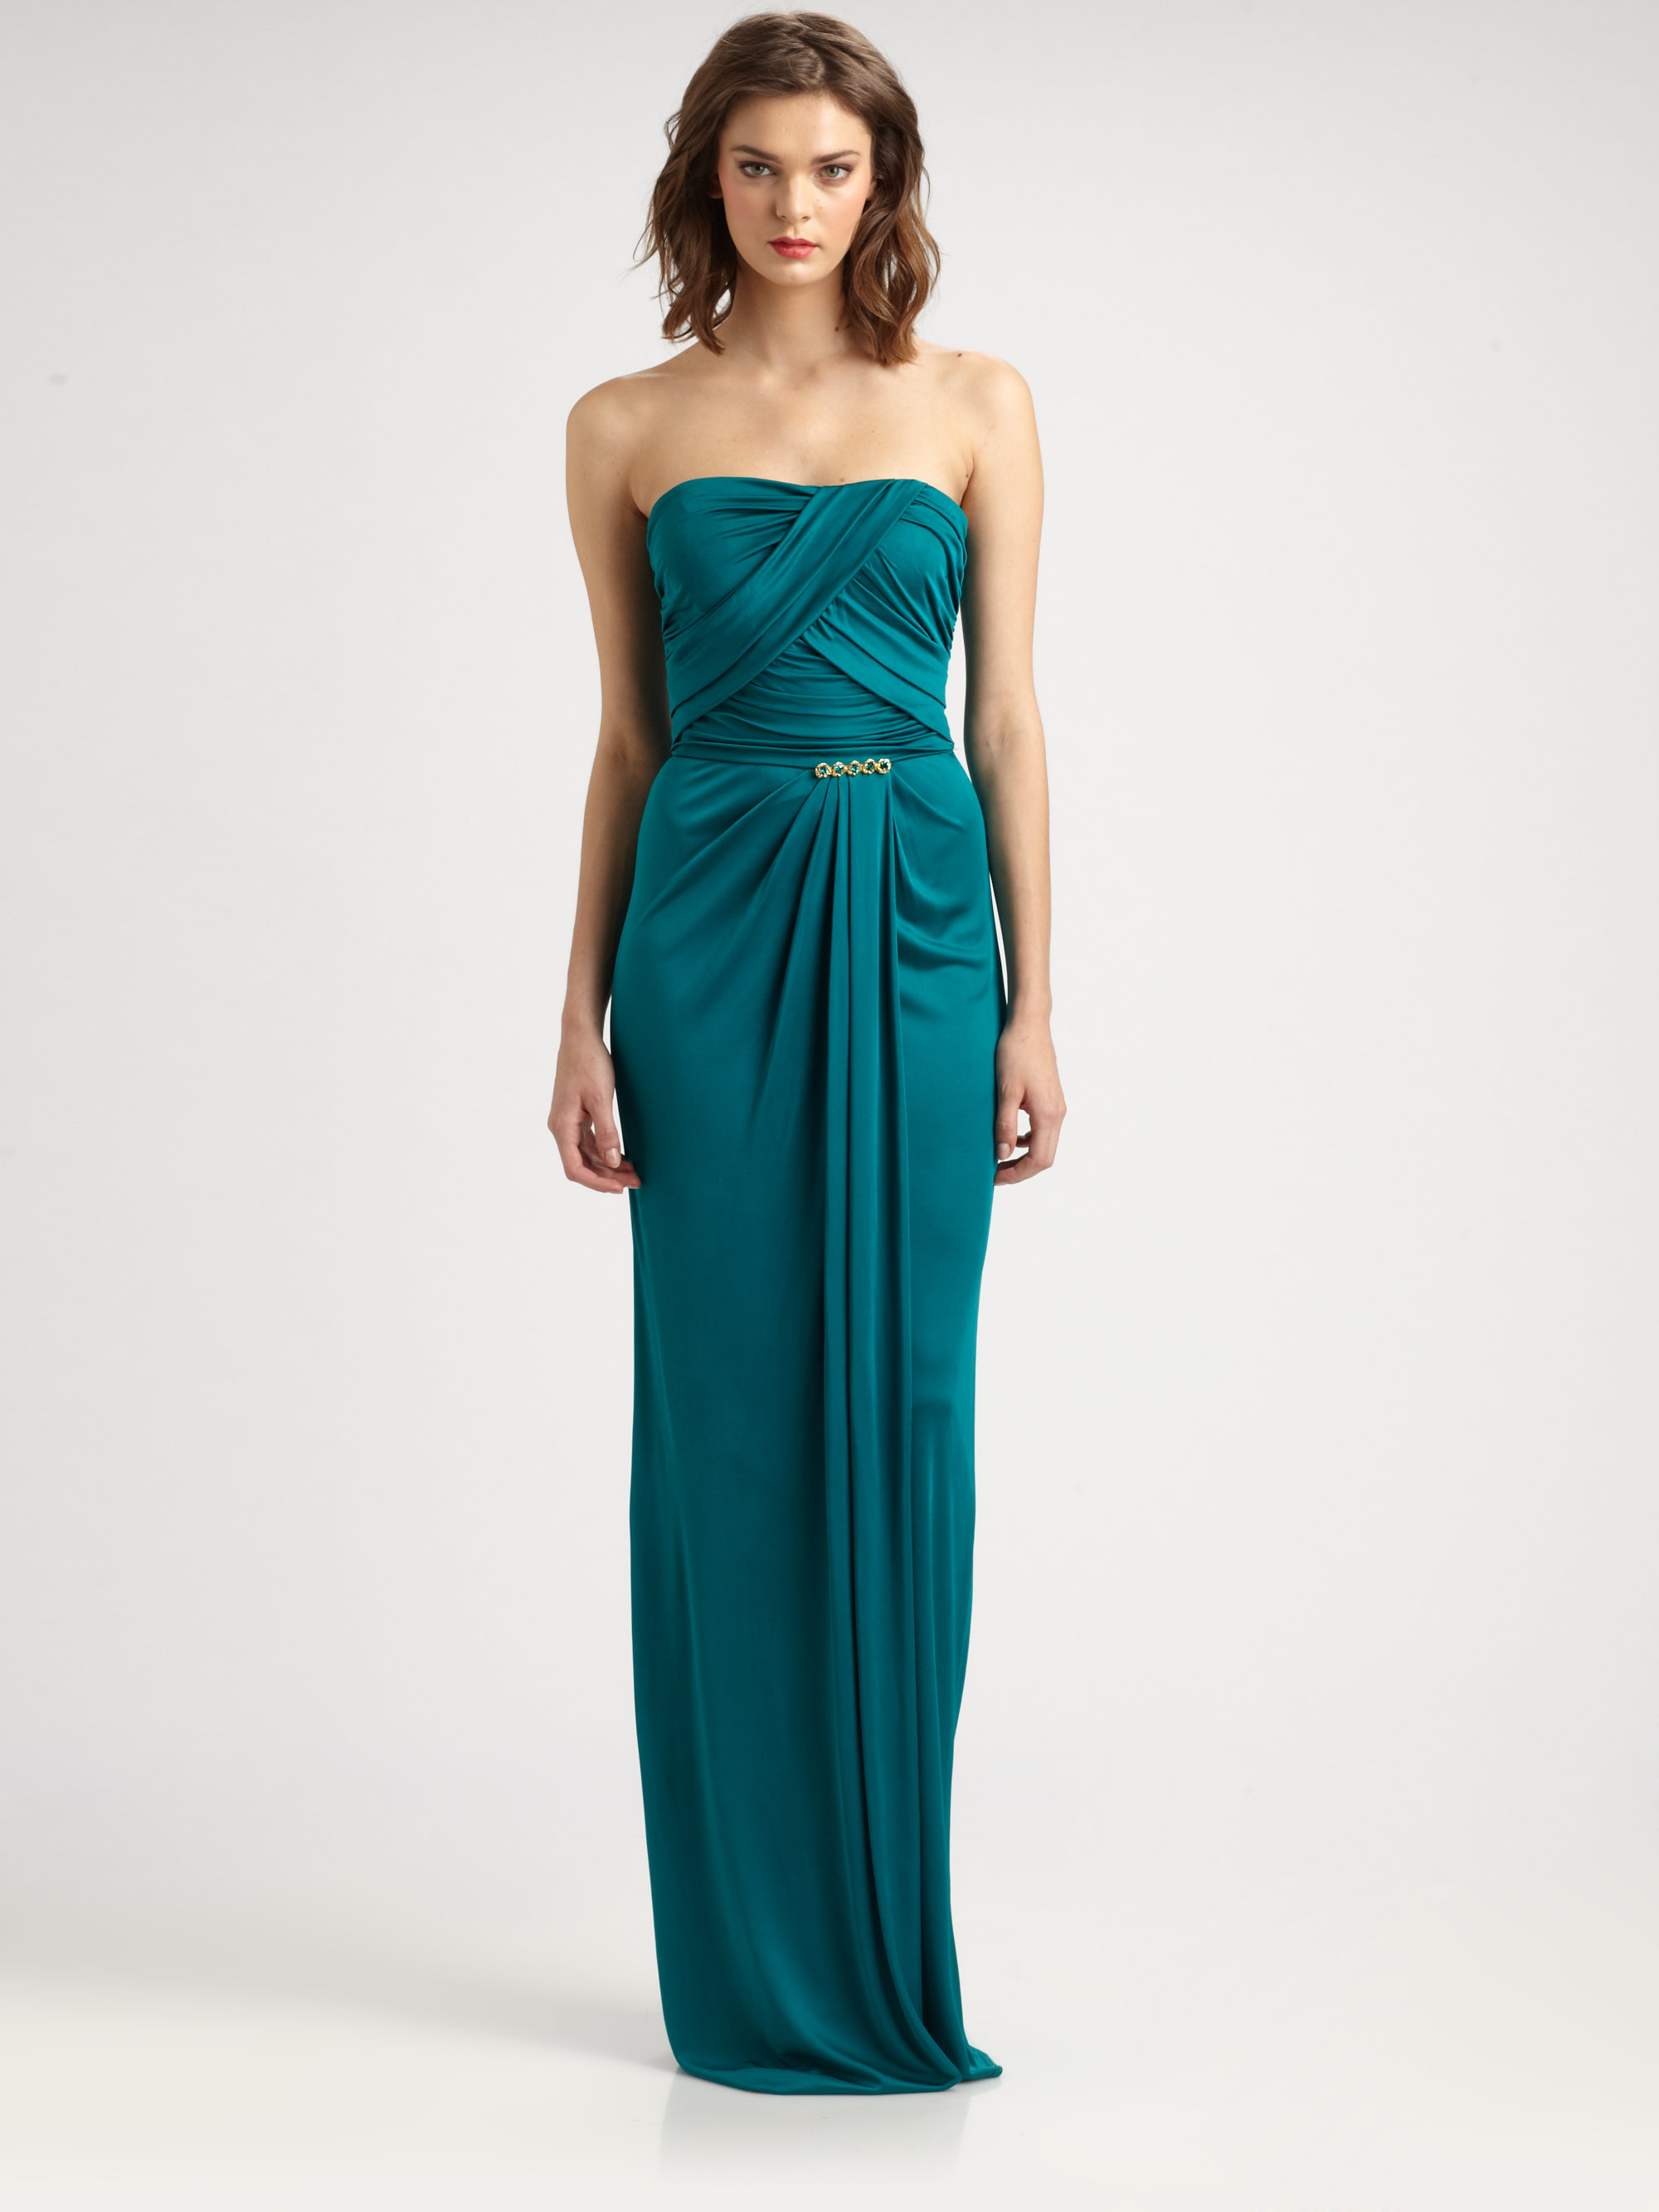 Lyst - David Meister Strapless Drape Gown in Green